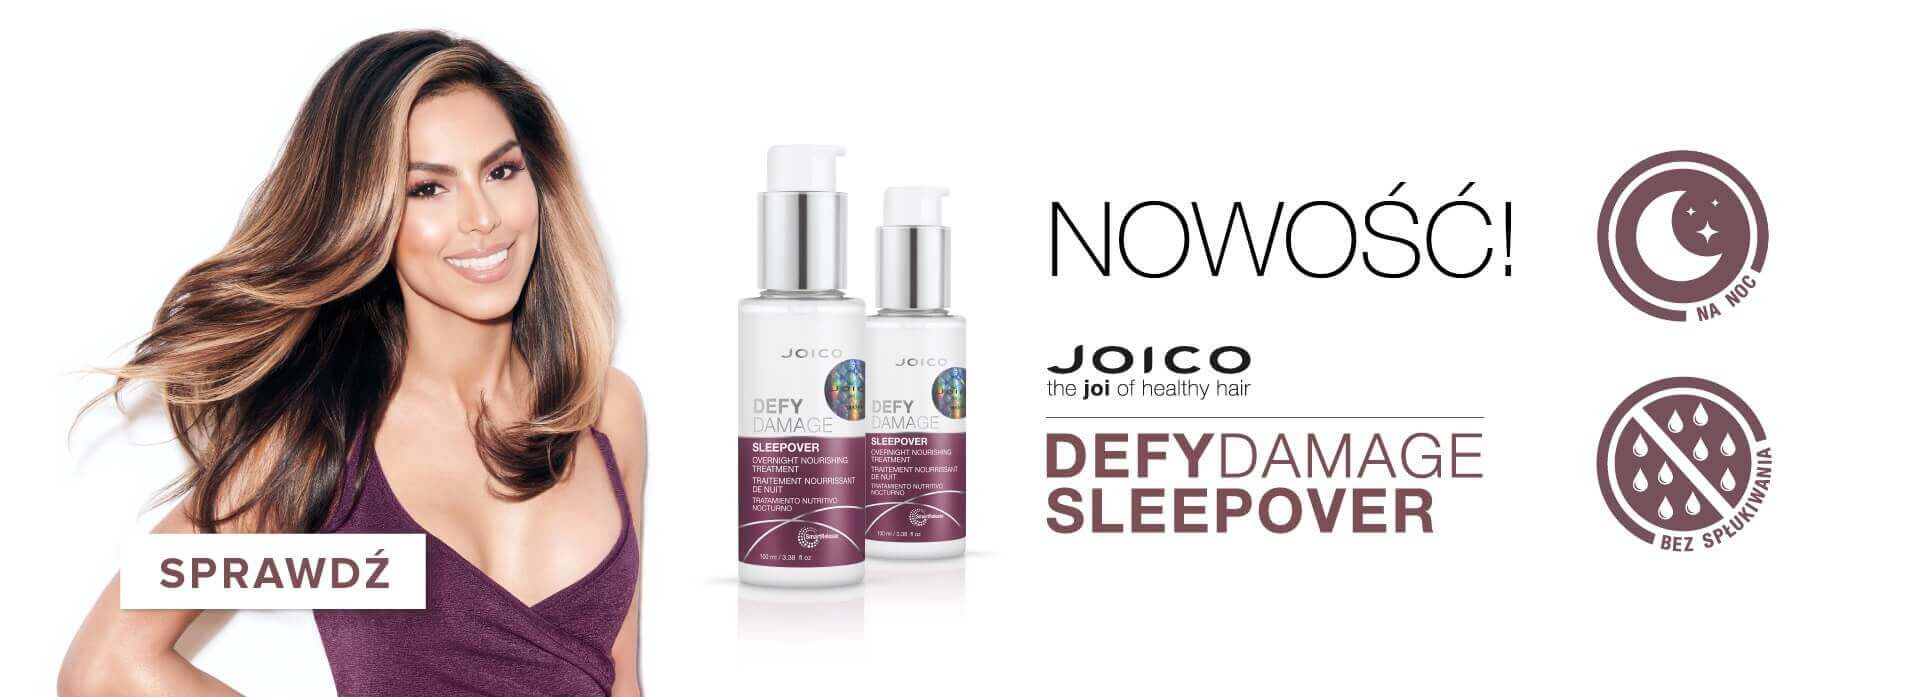 joico-defy-damage-sleepover